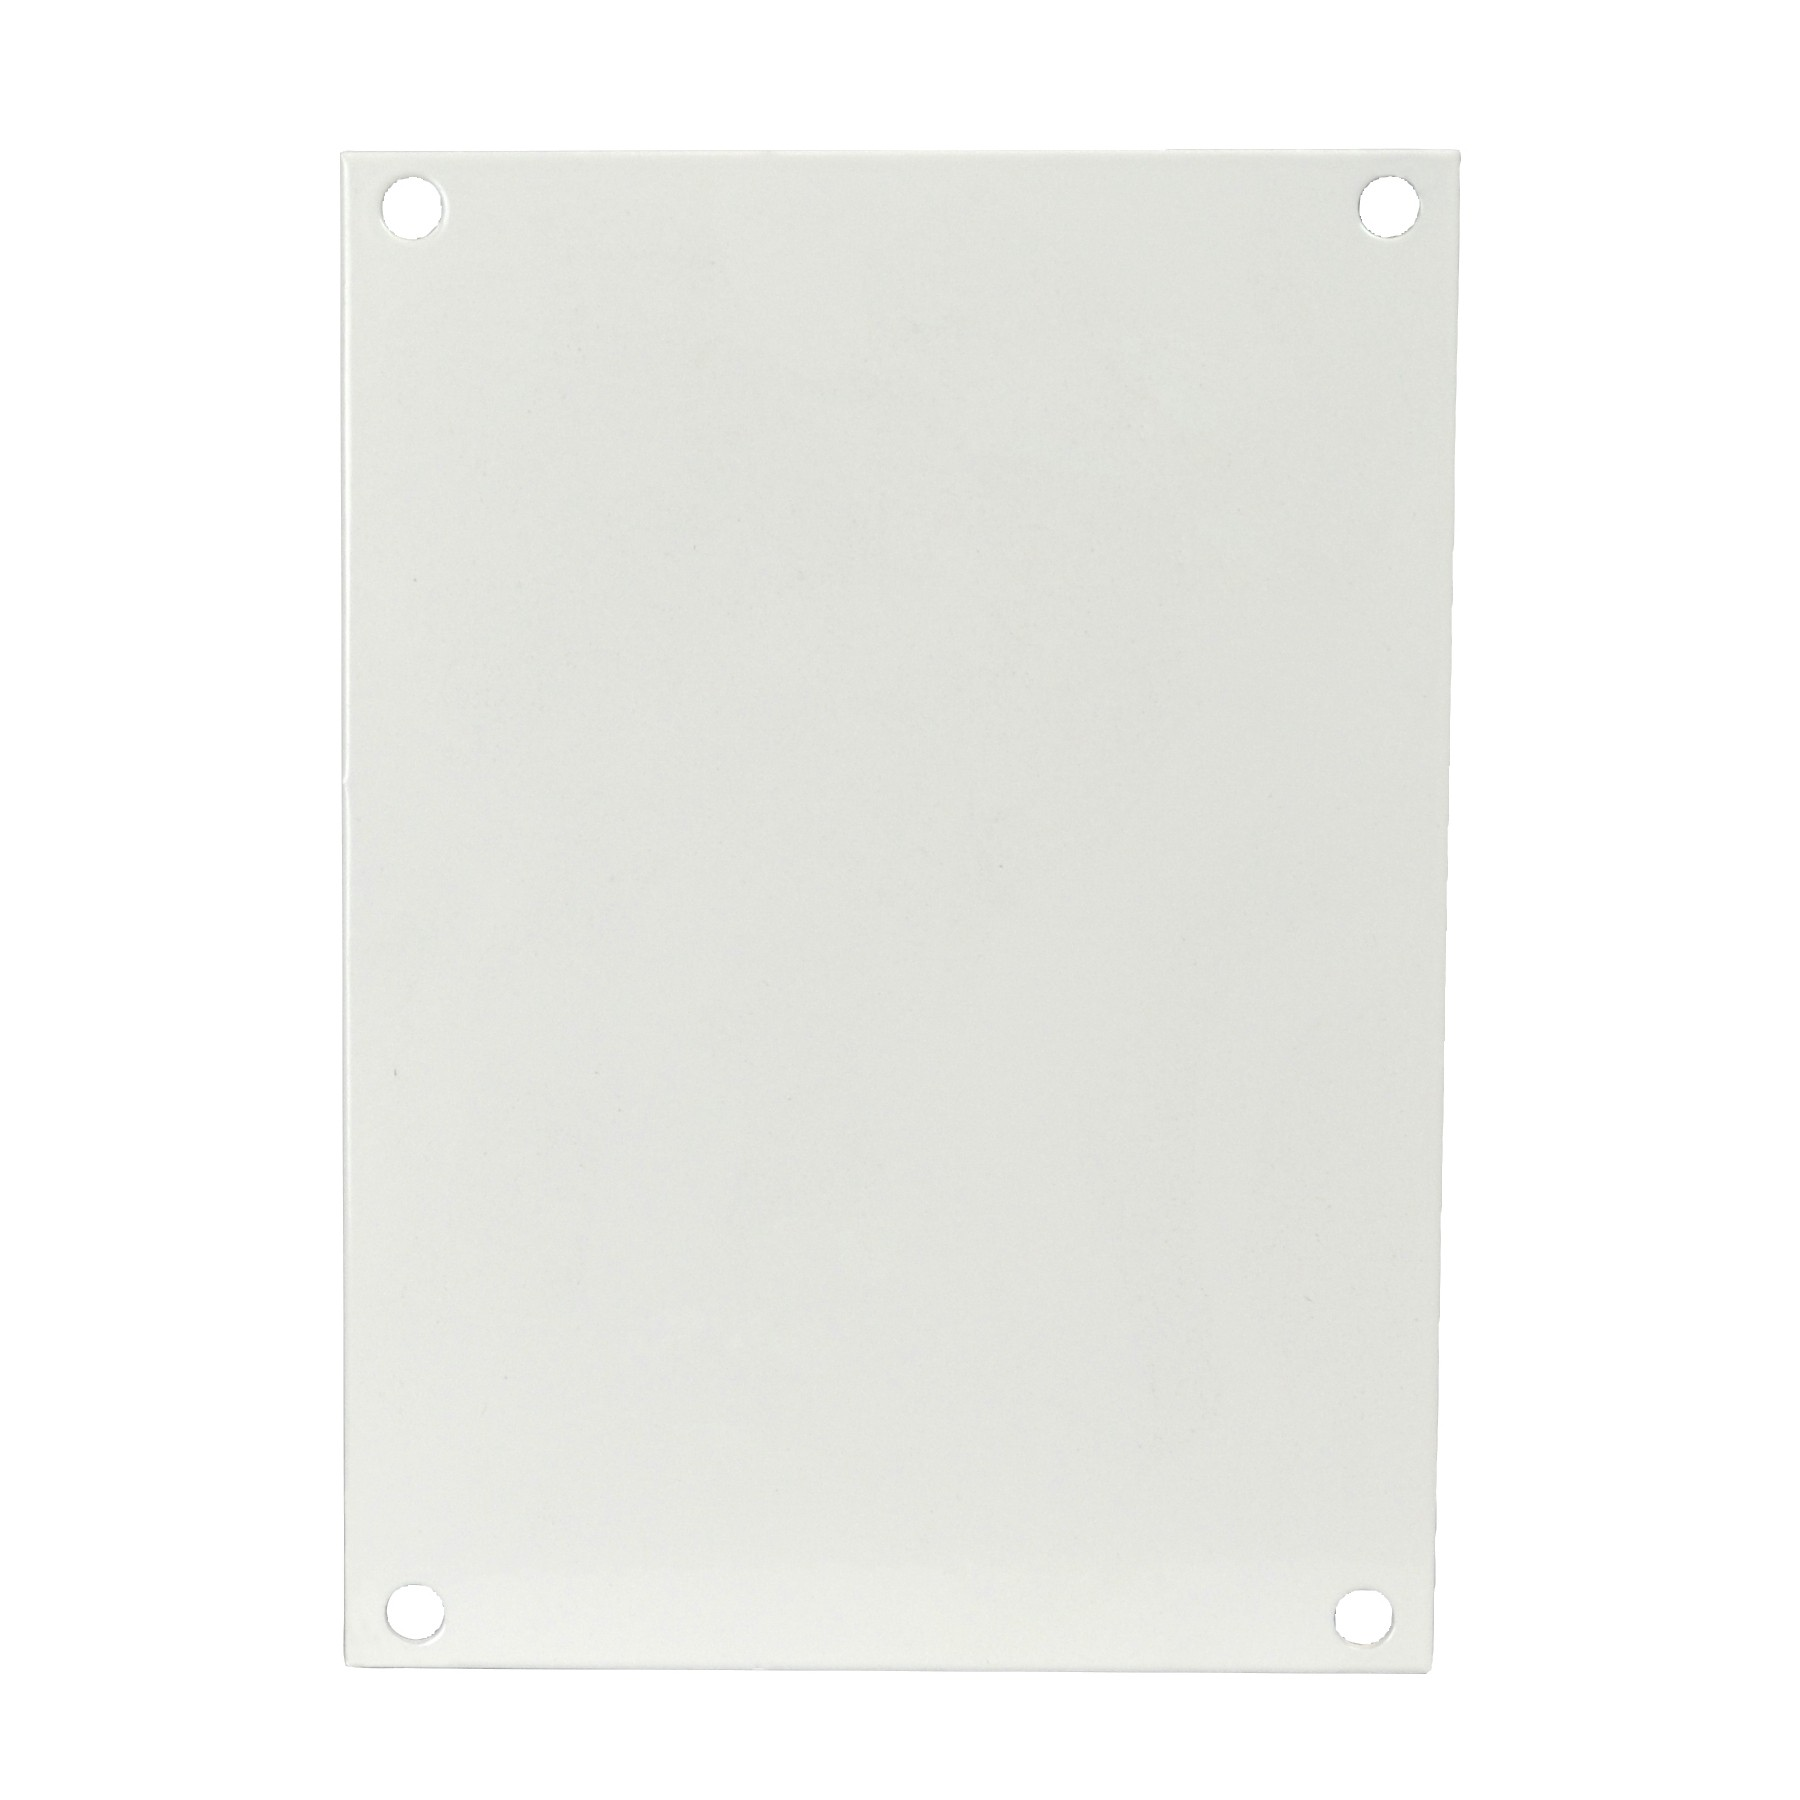 P86 - Carbon Steel Enclosure Back Panel Kit